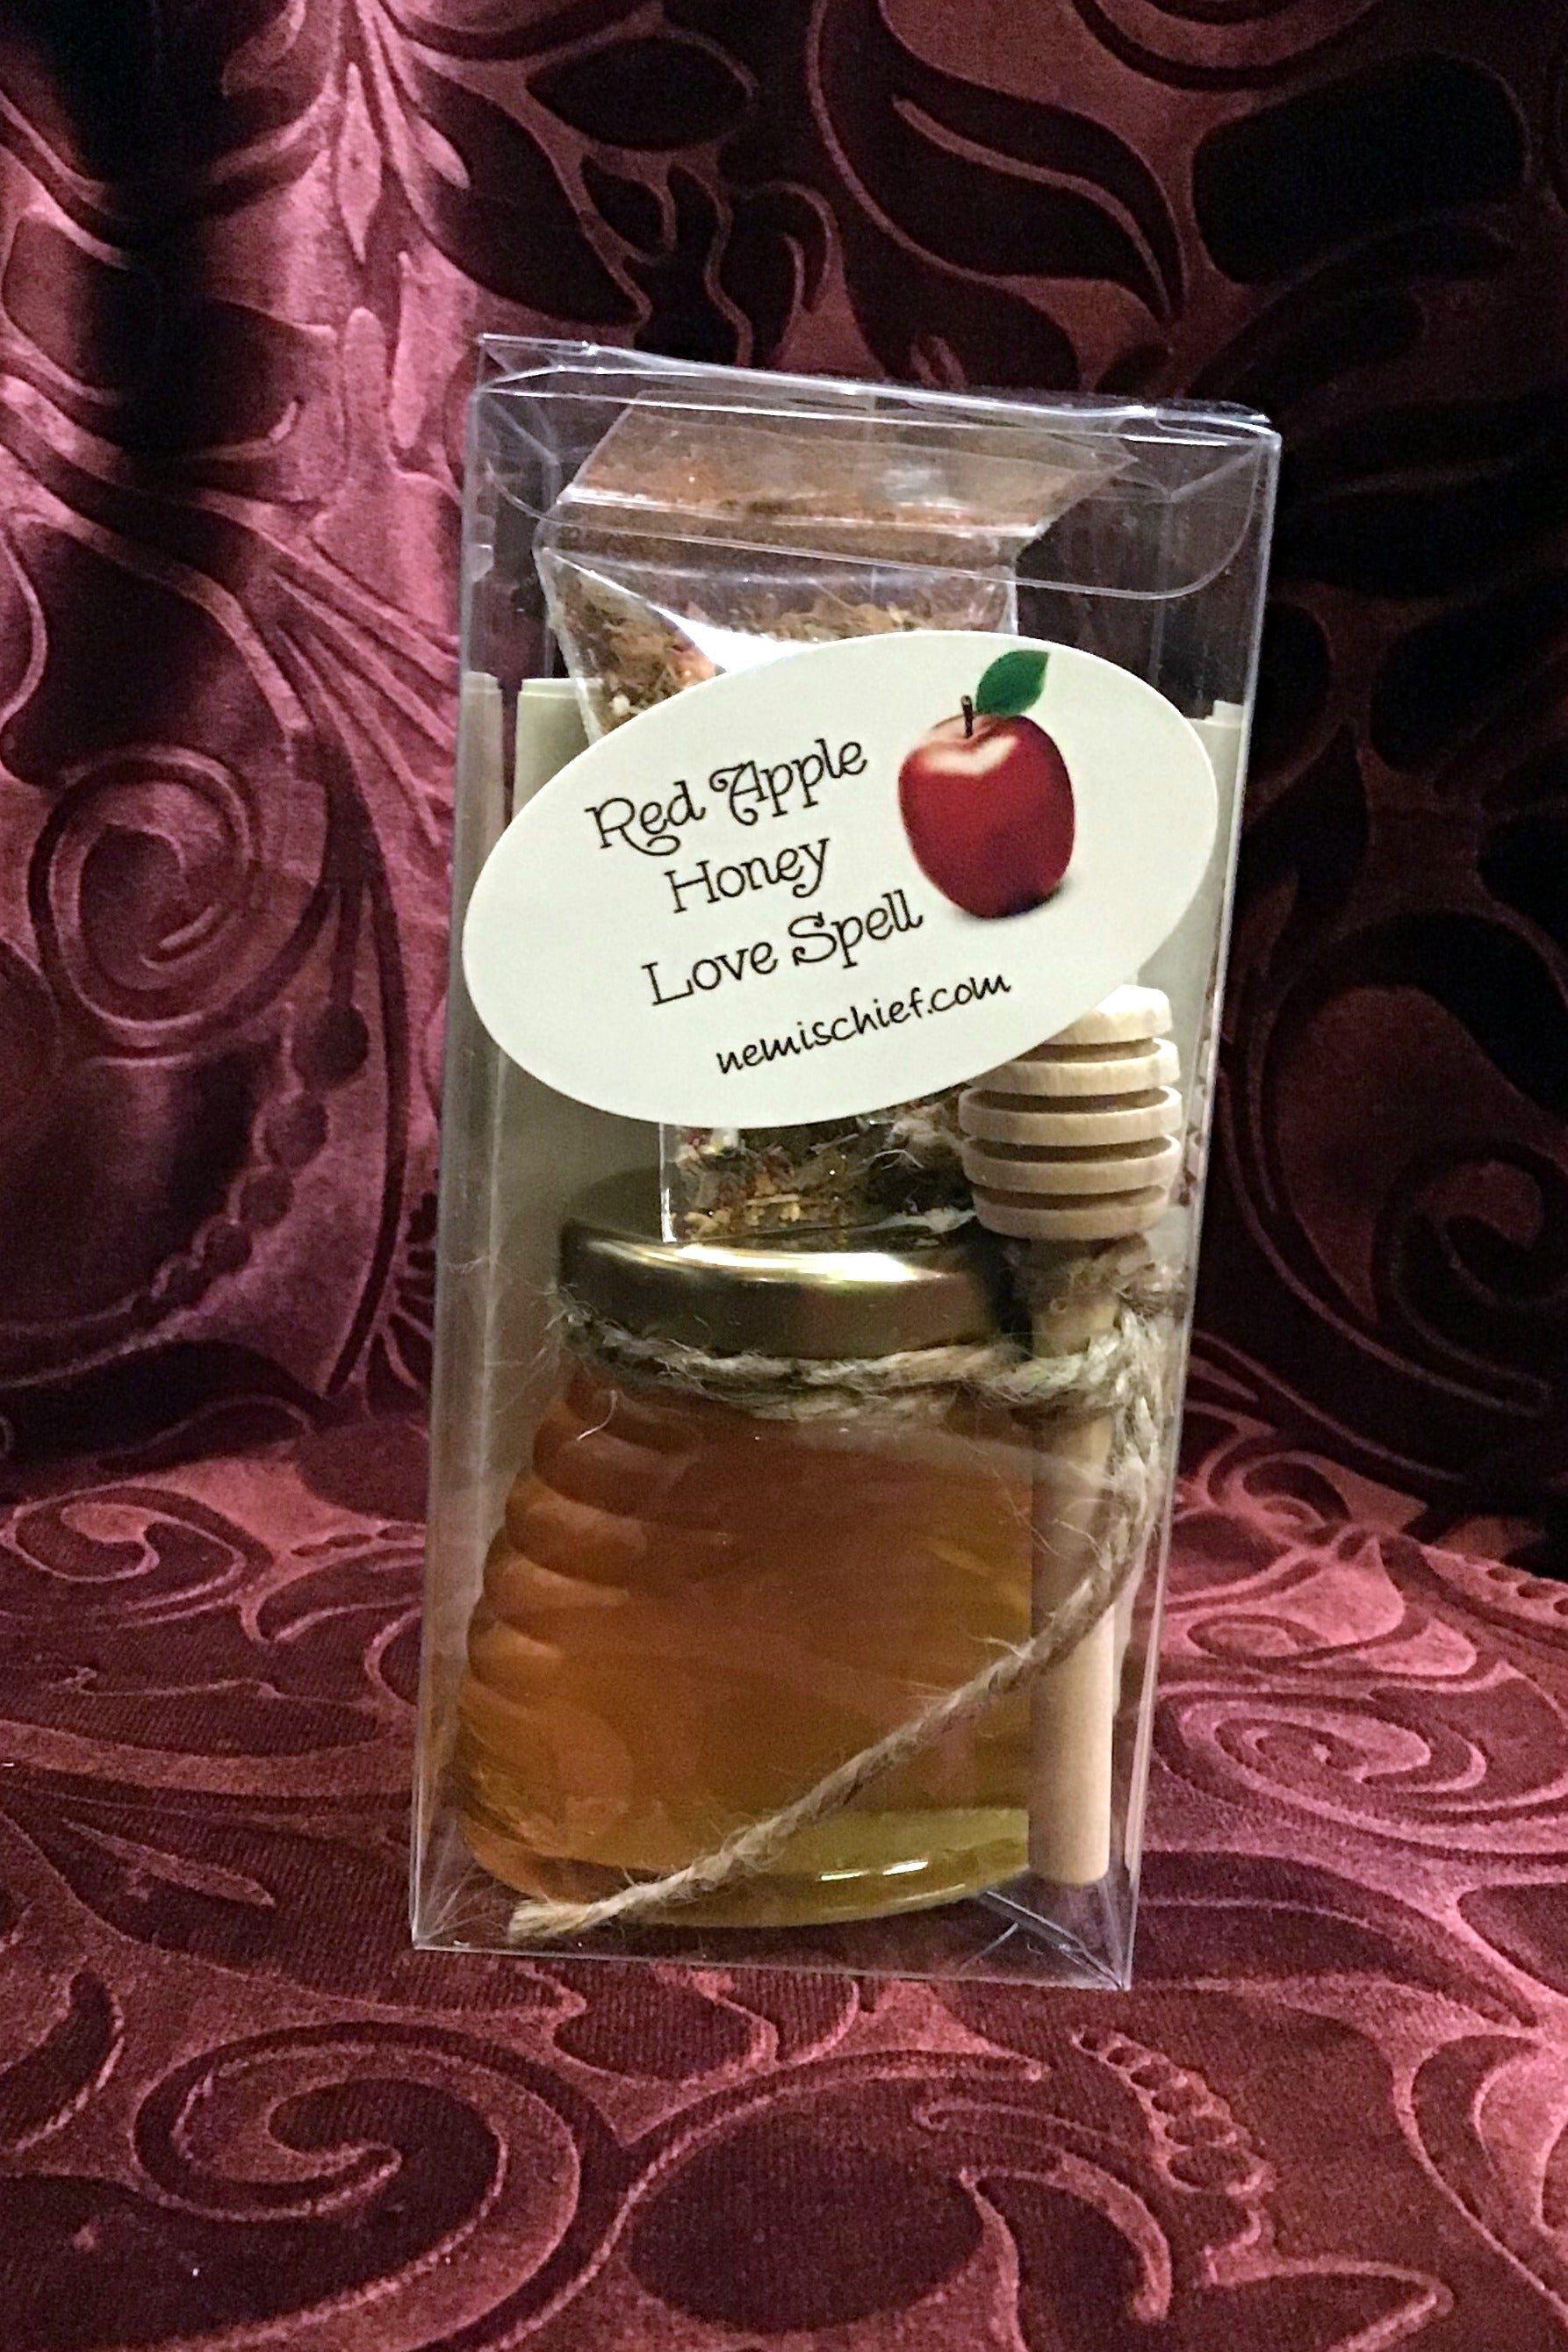 RED APPLE HONEY LOVE SPELL